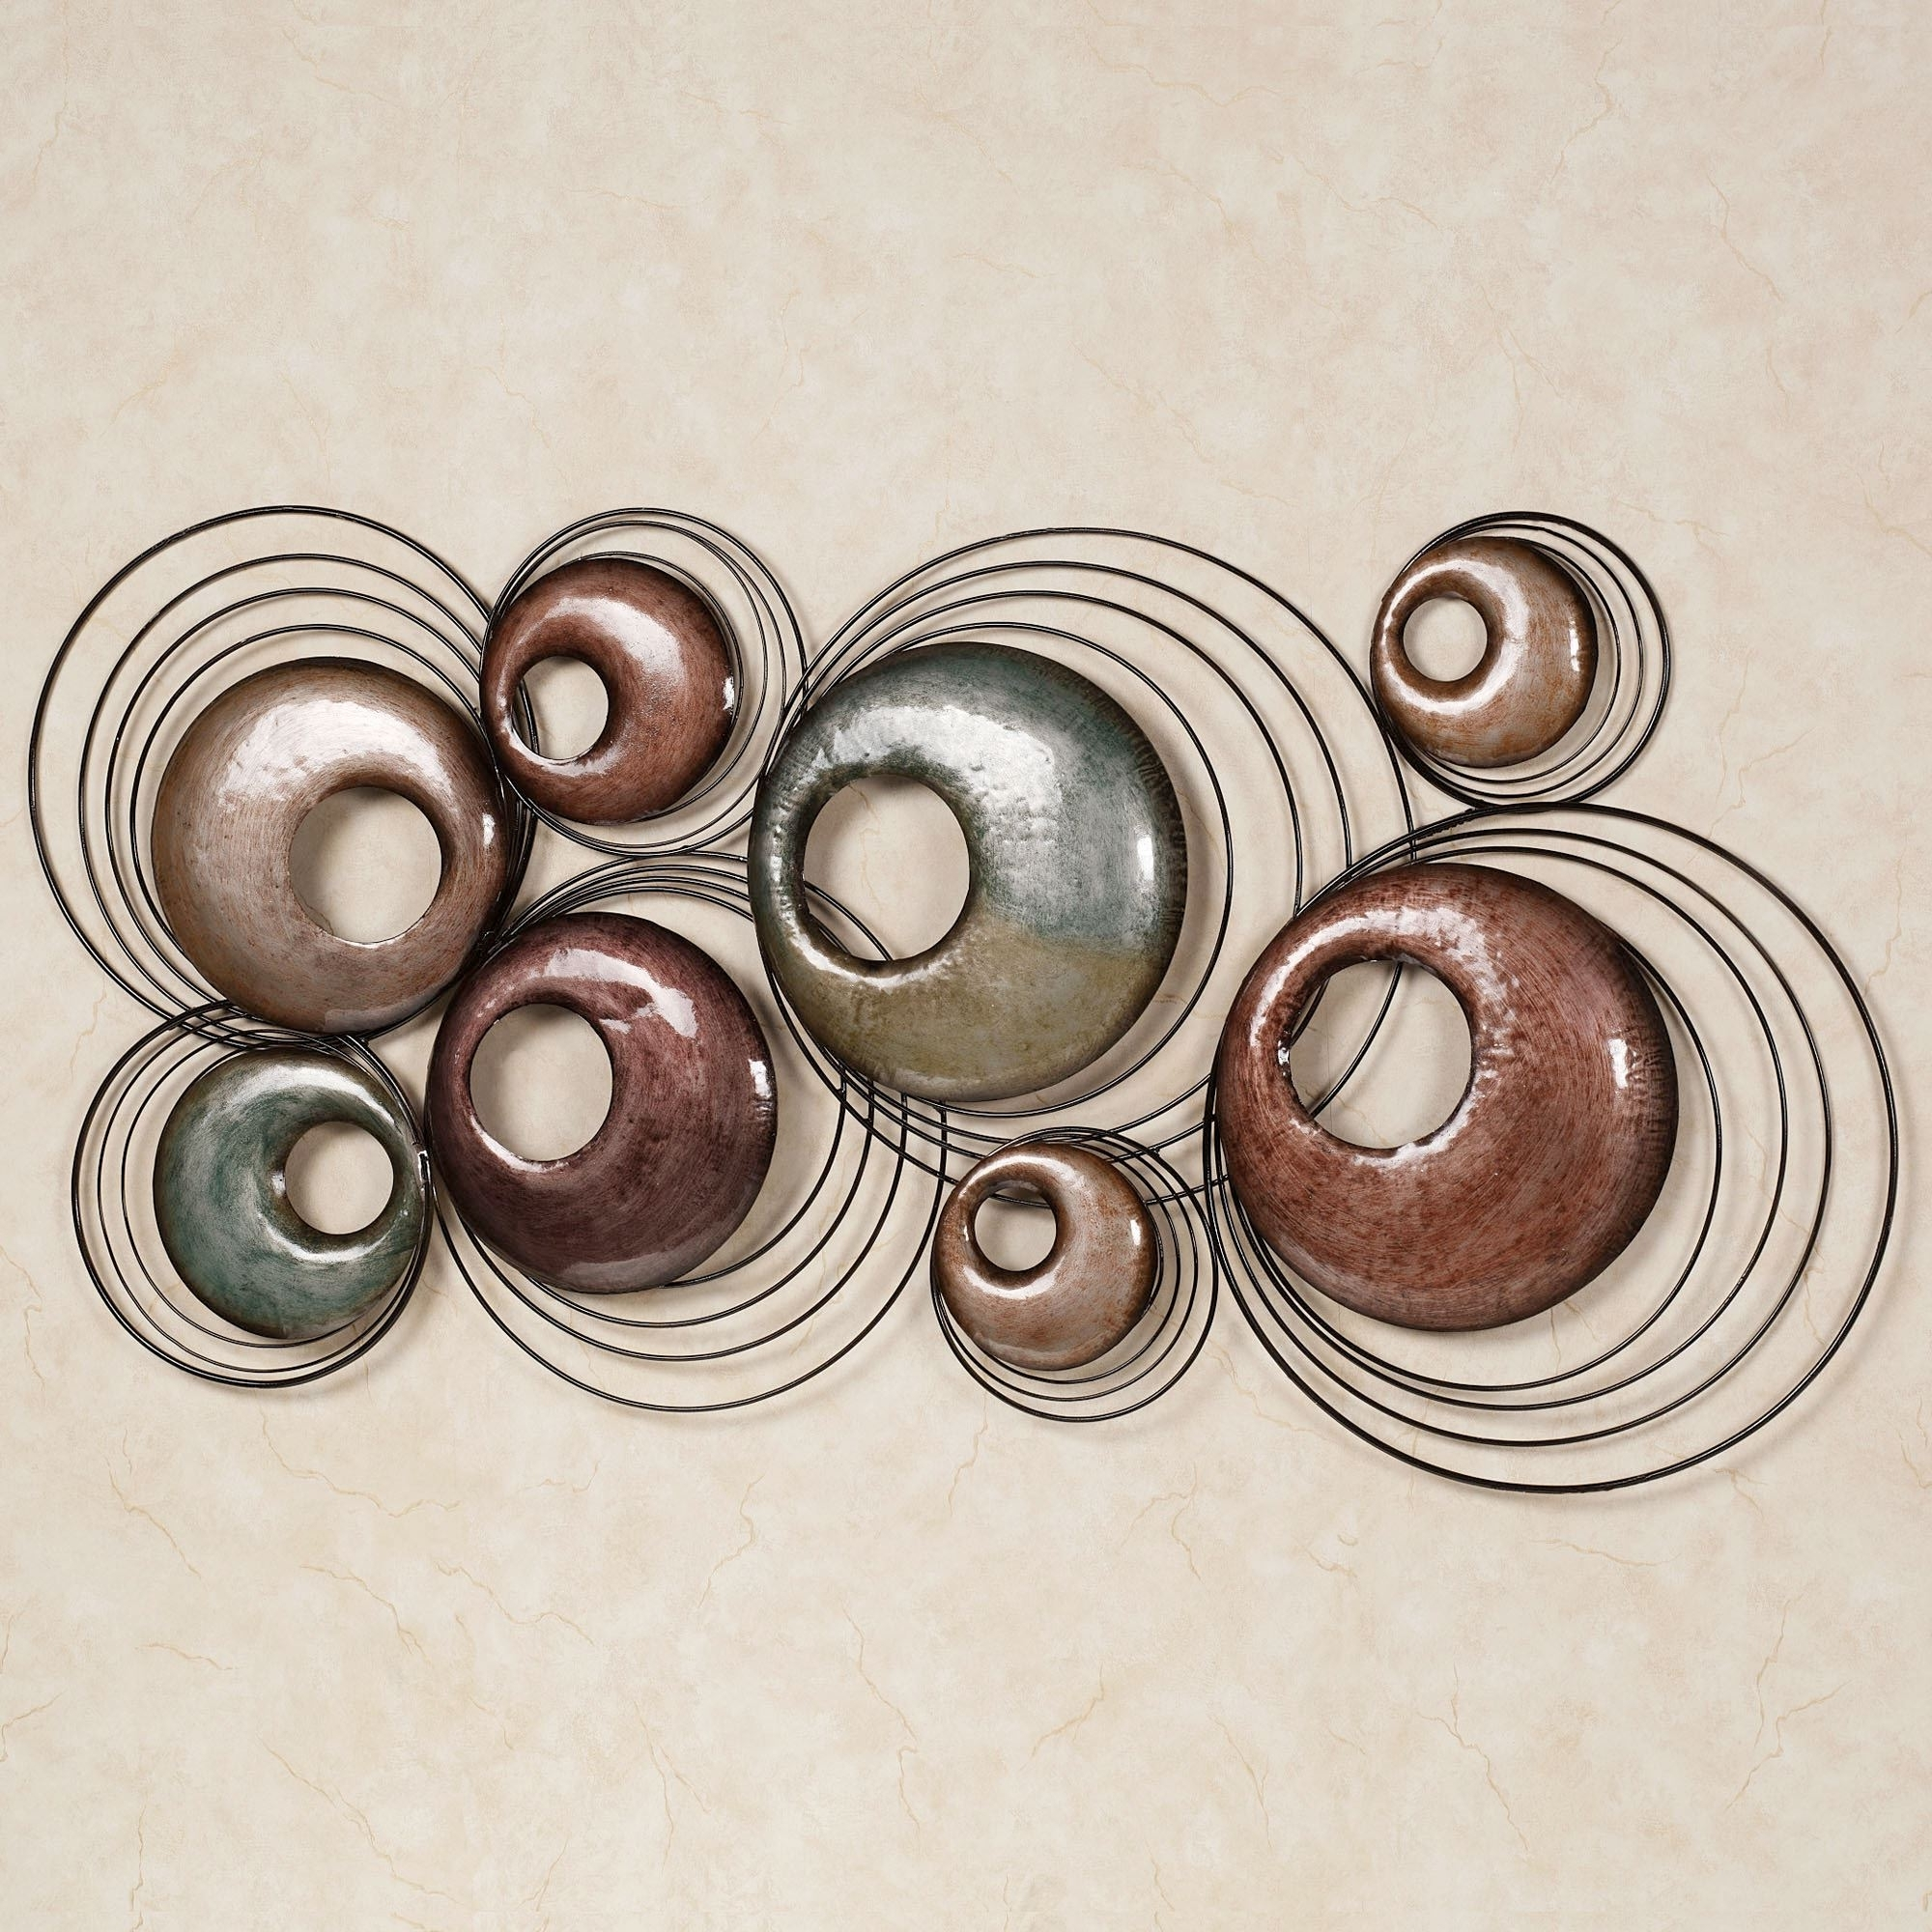 Most Recent Abstract Metal Wall Art Sculptures Pertaining To Echo Metal Wall Sculpture Art (View 11 of 15)